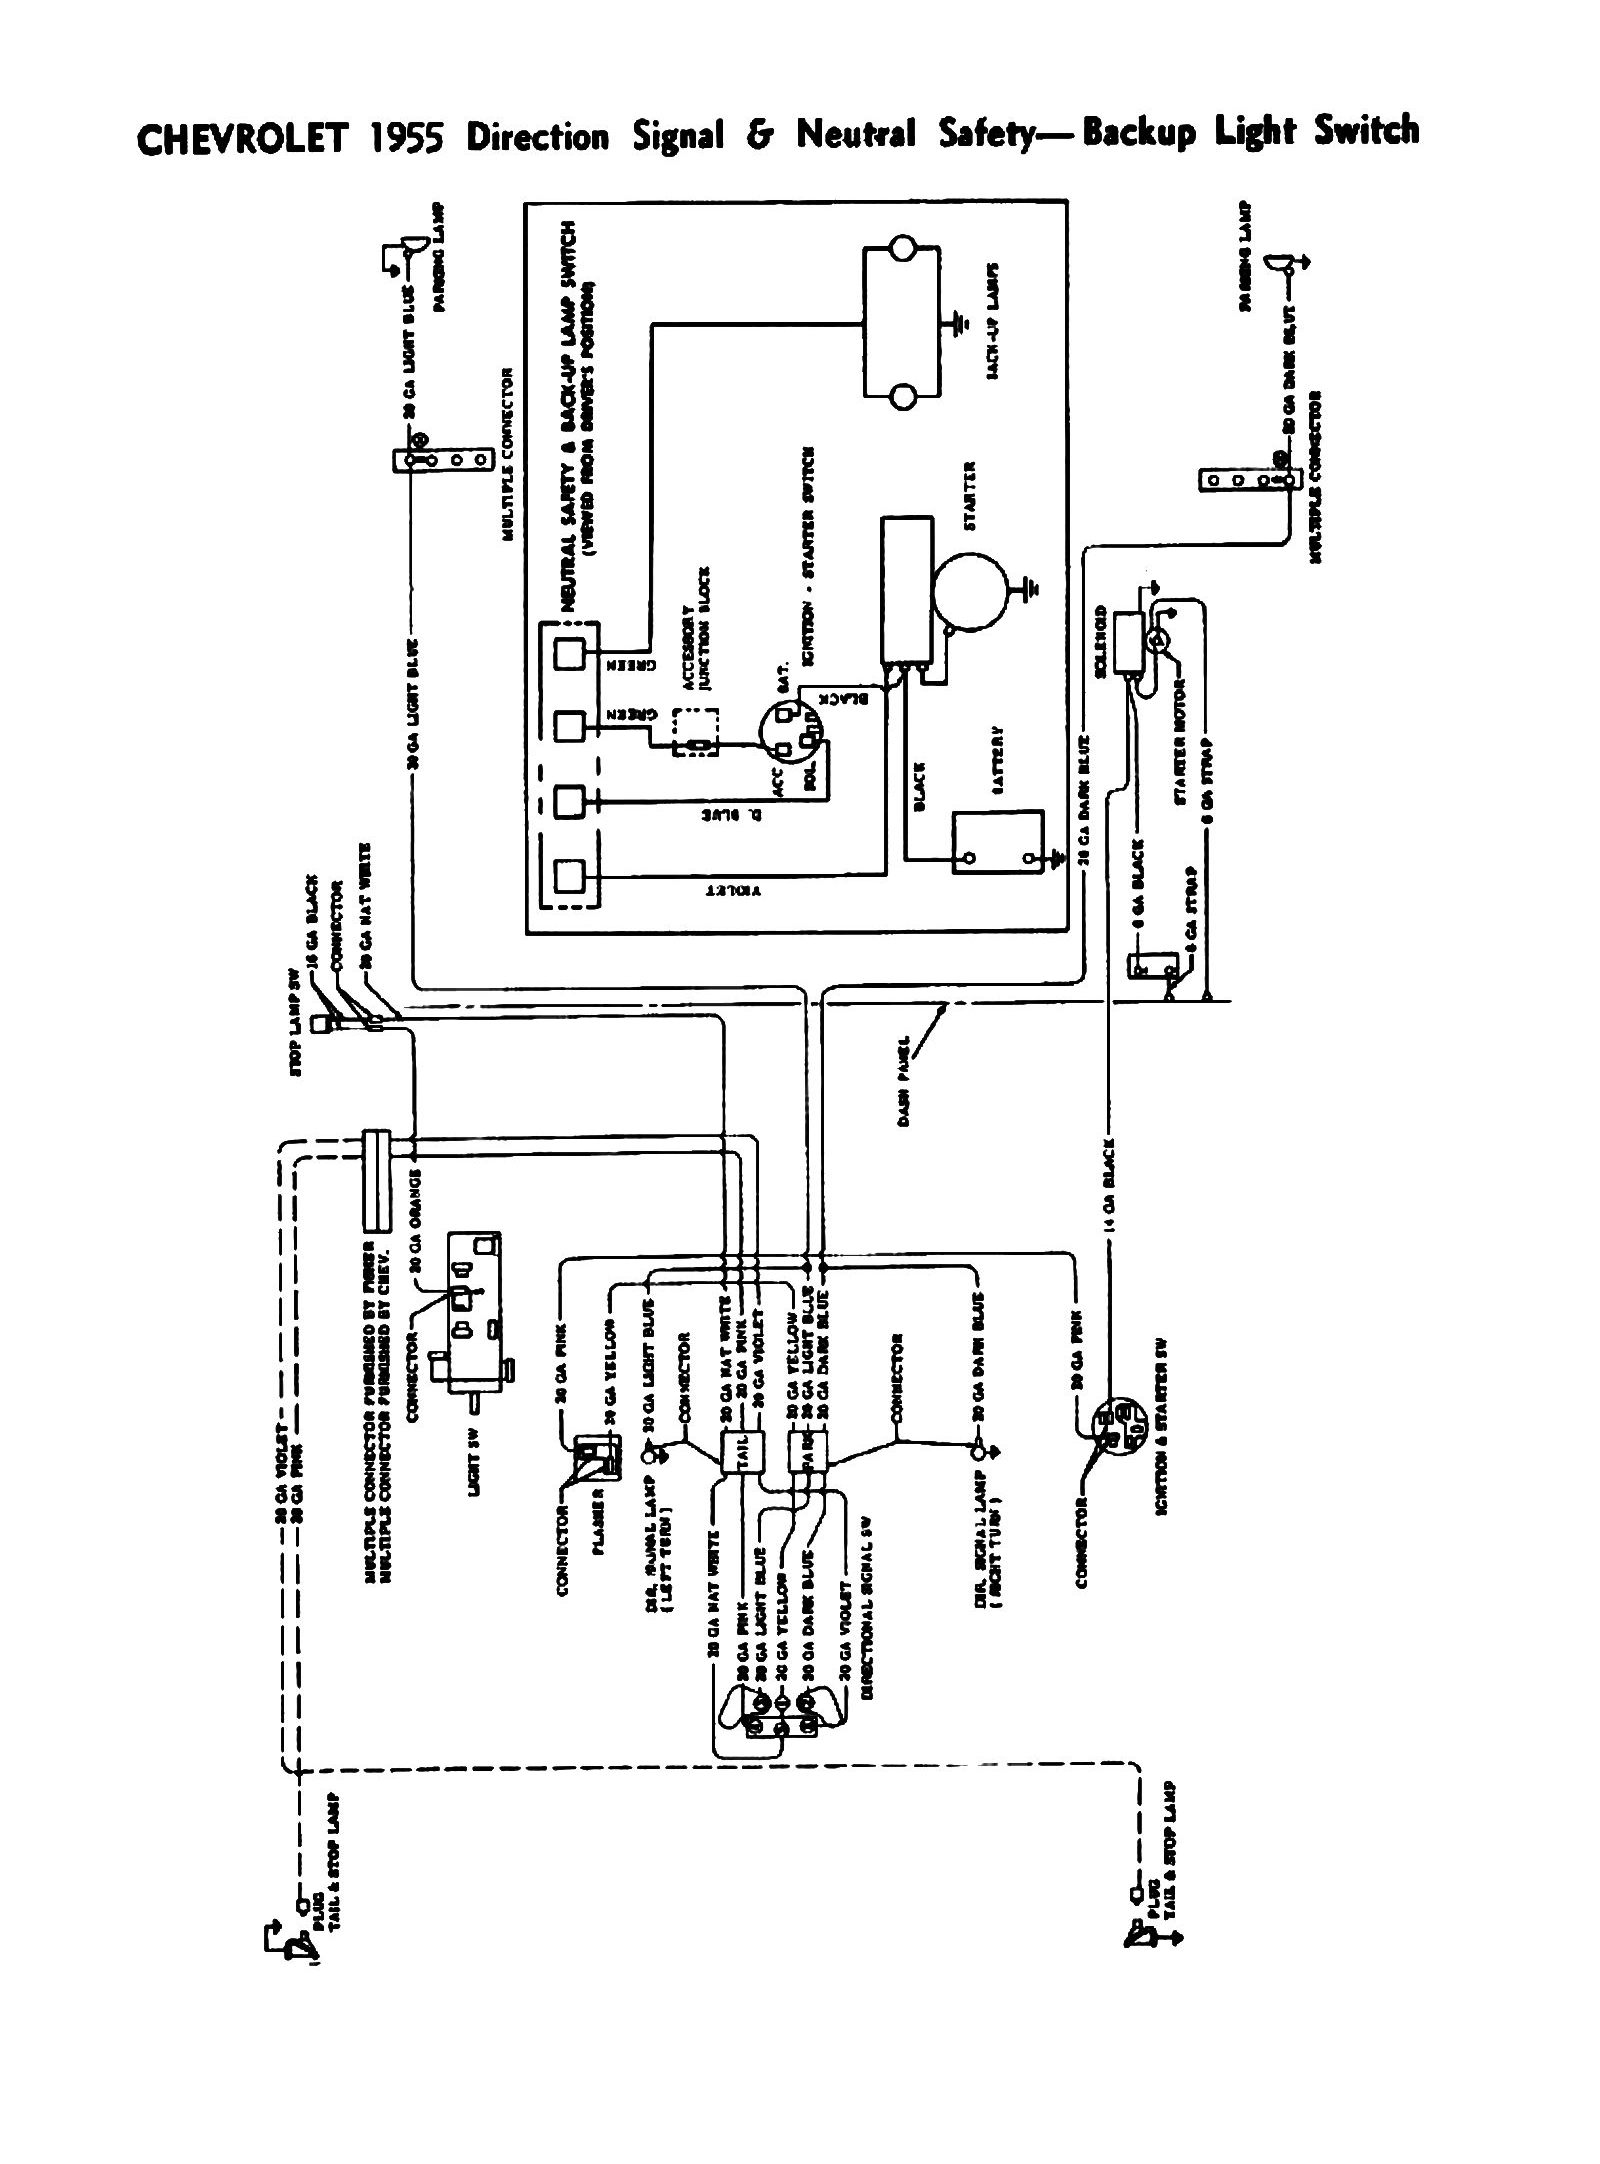 wiring diagram for 1955 chevy truck new wiring diagrams 2000 cavalier dimmer wiring technical